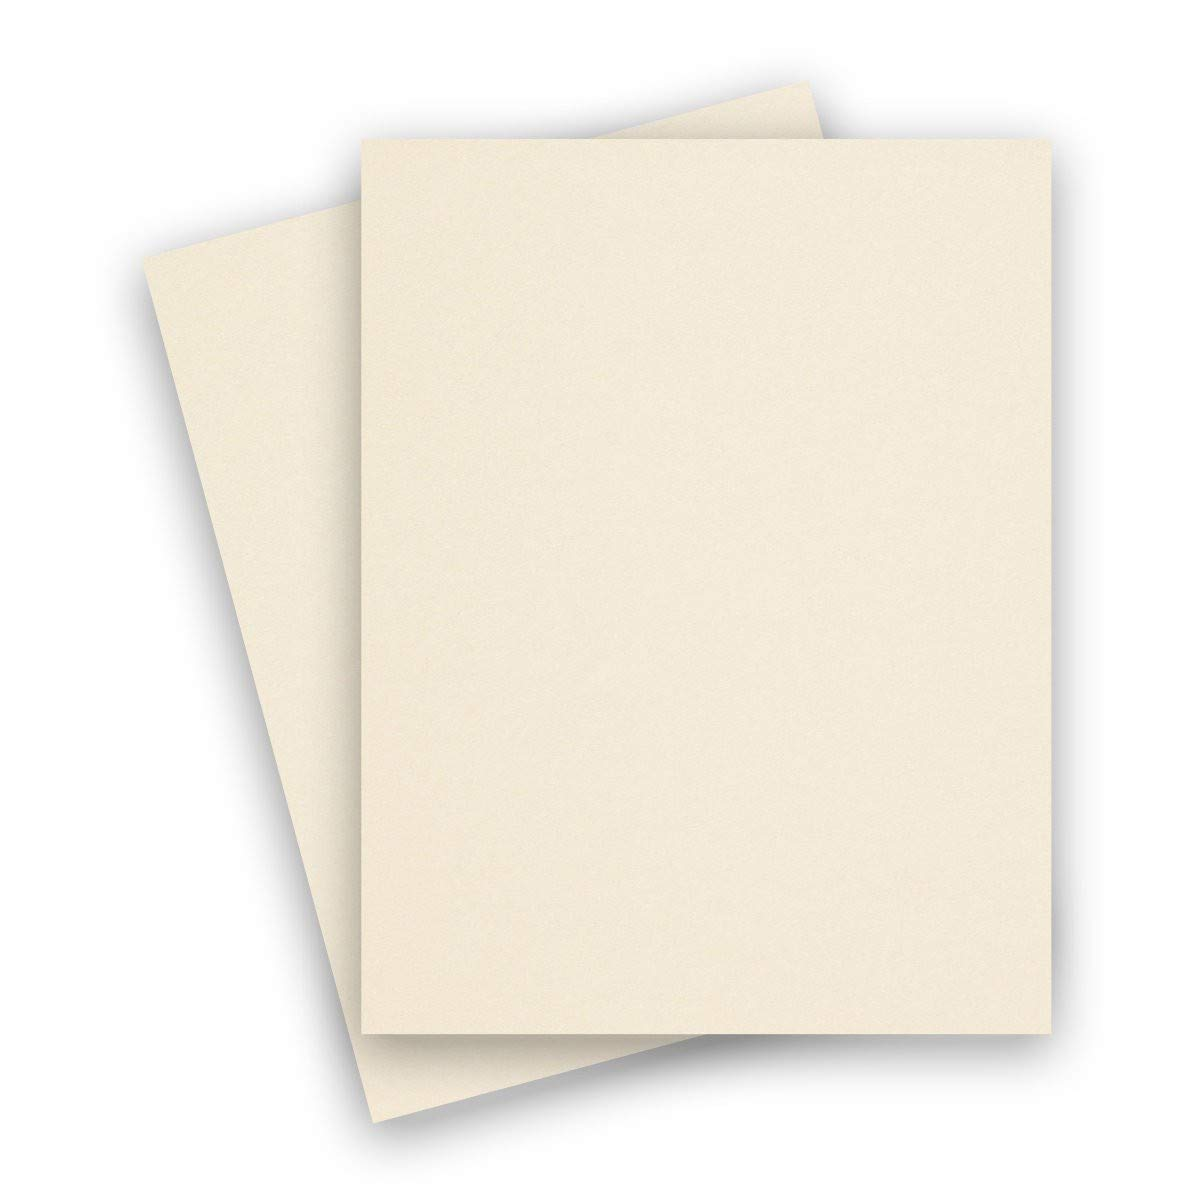 Poison Ivory 8-1/2-x-11 Lightweight 32T Multi-use Paper 500-pk - PaperPapers 118 GSM (32/80lb Text) Letter Size Printer Friendly Paper - Professionals, Designers, Crafters and DIY Projects by Paper Papers